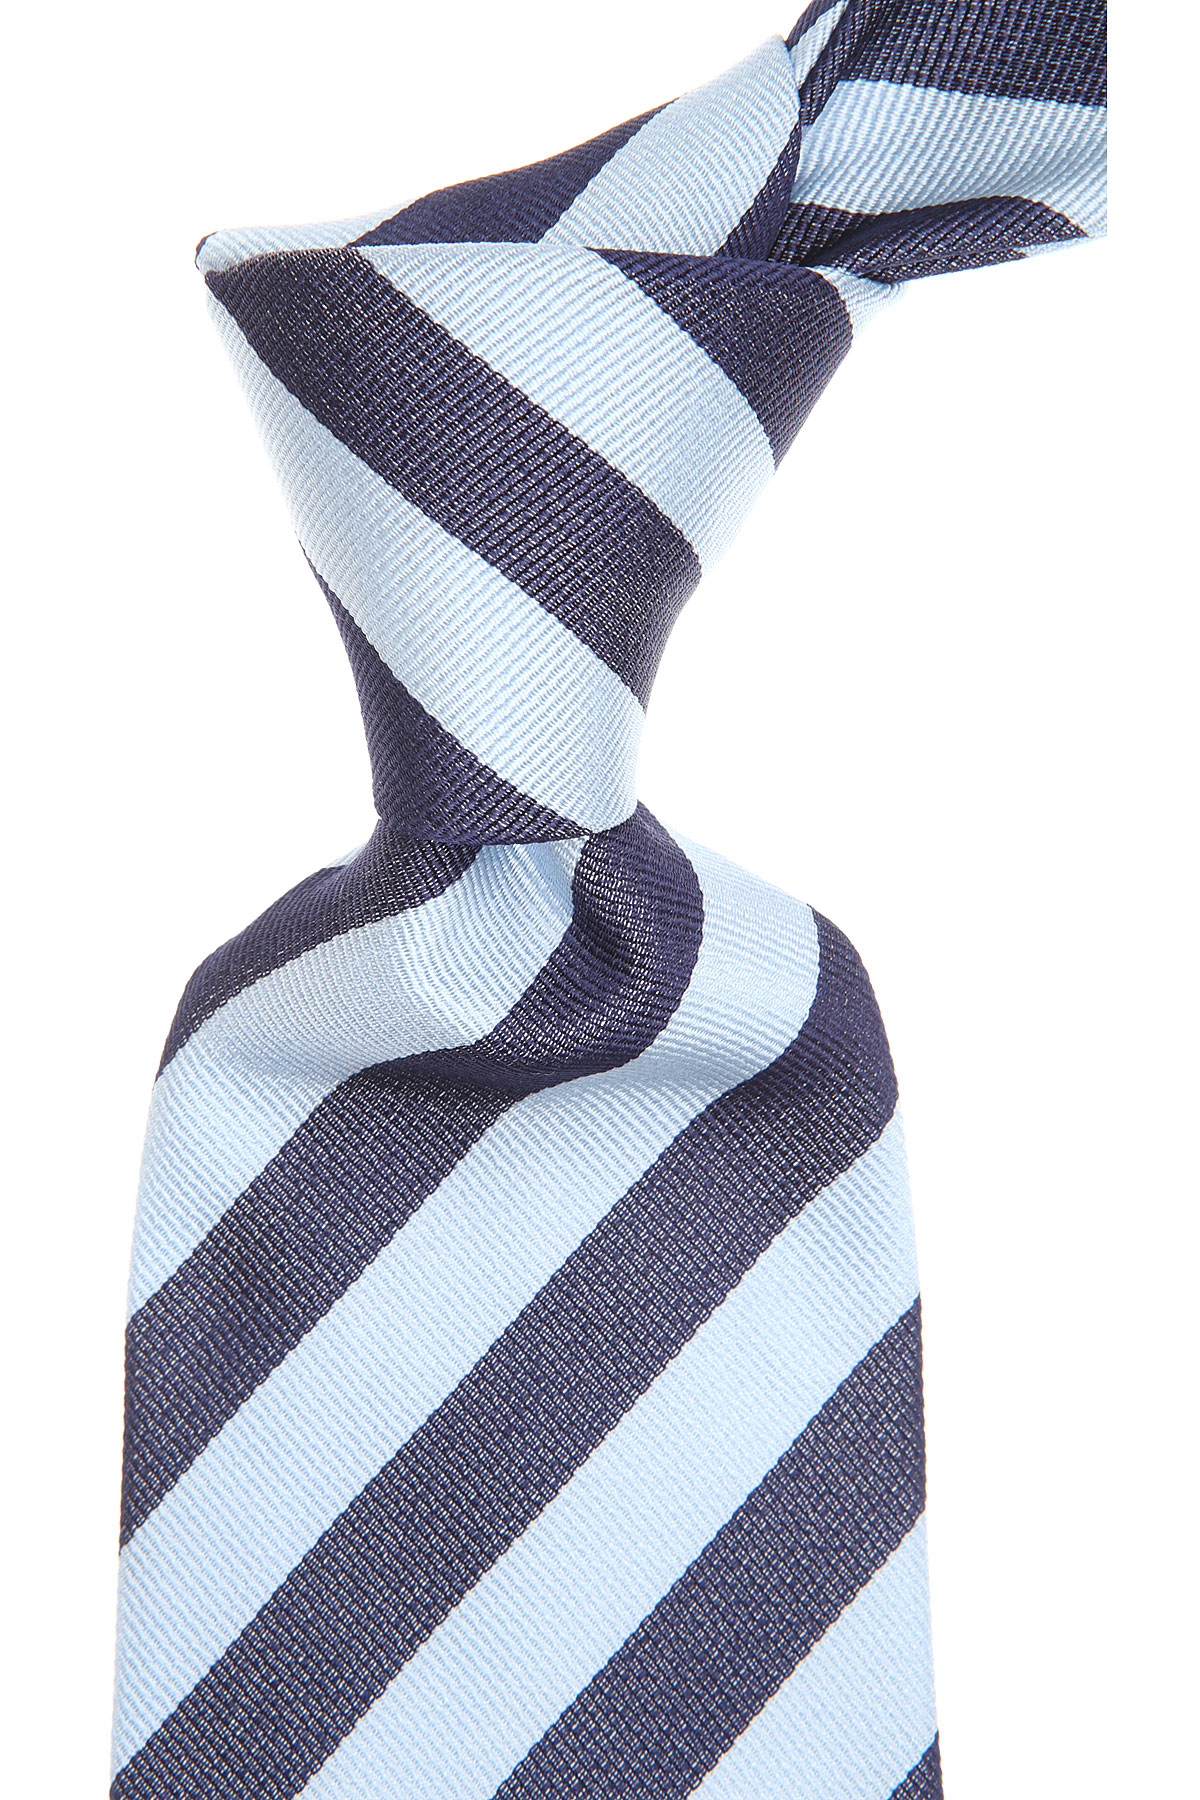 S.T. Dupont Ties On Sale, Avio Blue, Silk, 2019